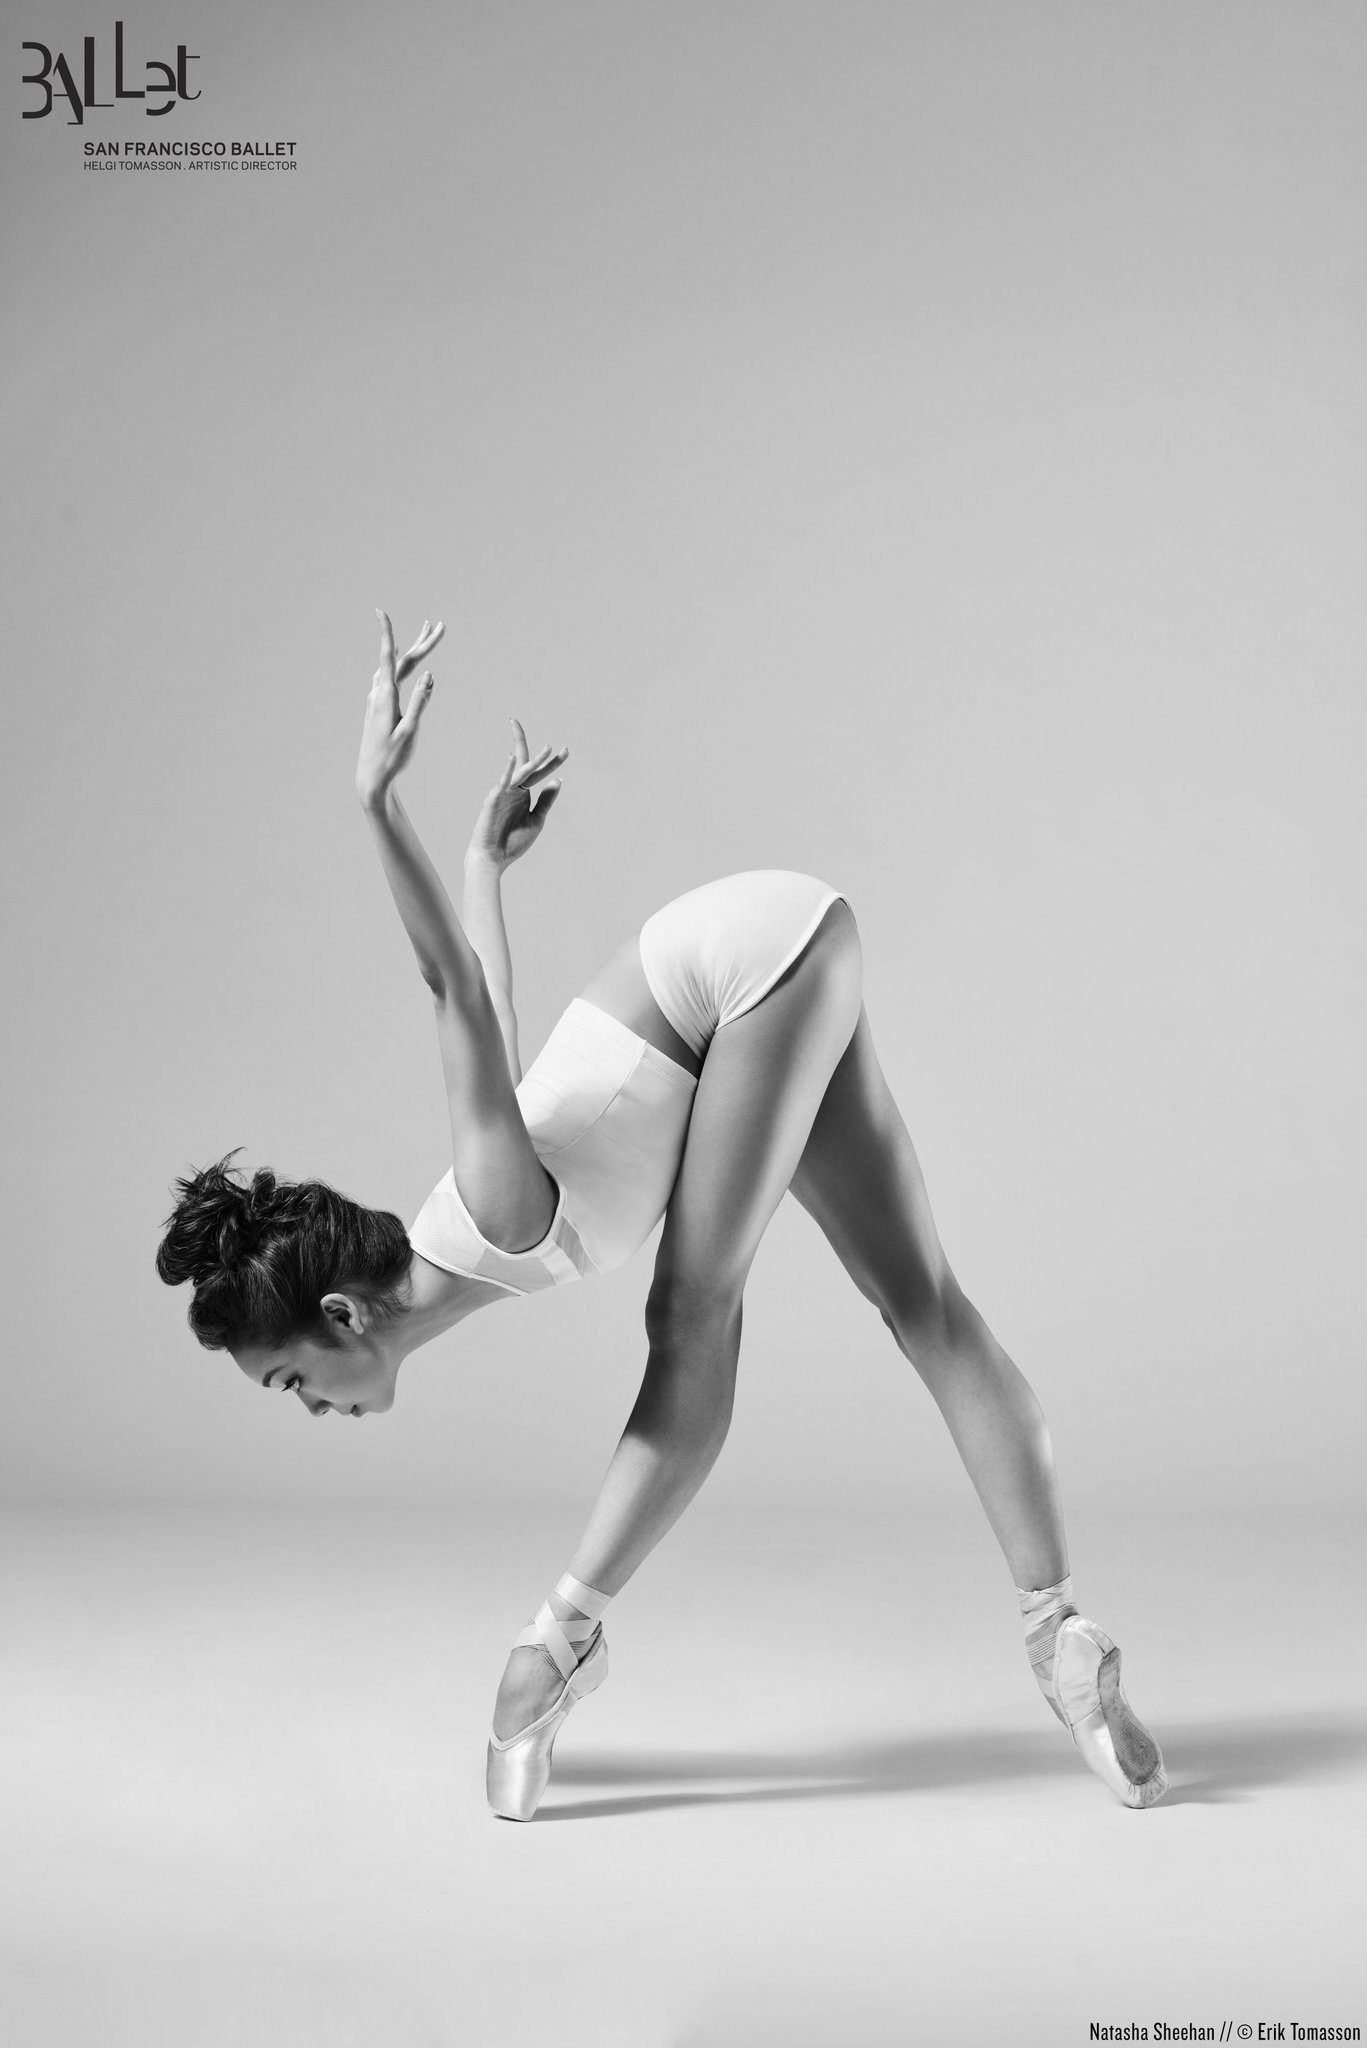 Reloaded twaddle – RT @sfballet: Have you seen the programming for our October tour at @kencen? We ...